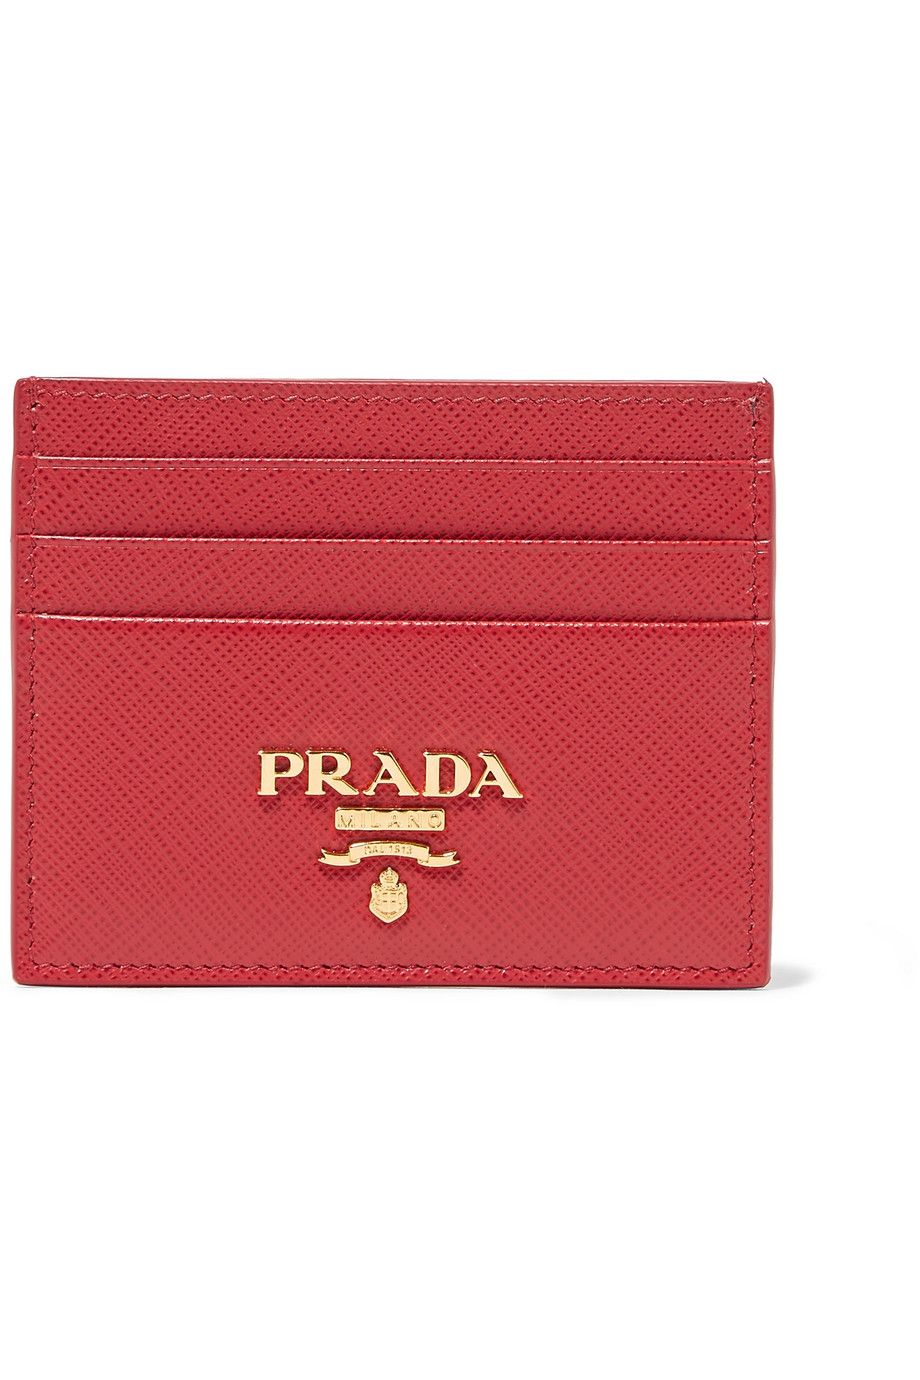 A Luxe Leather Cardholder